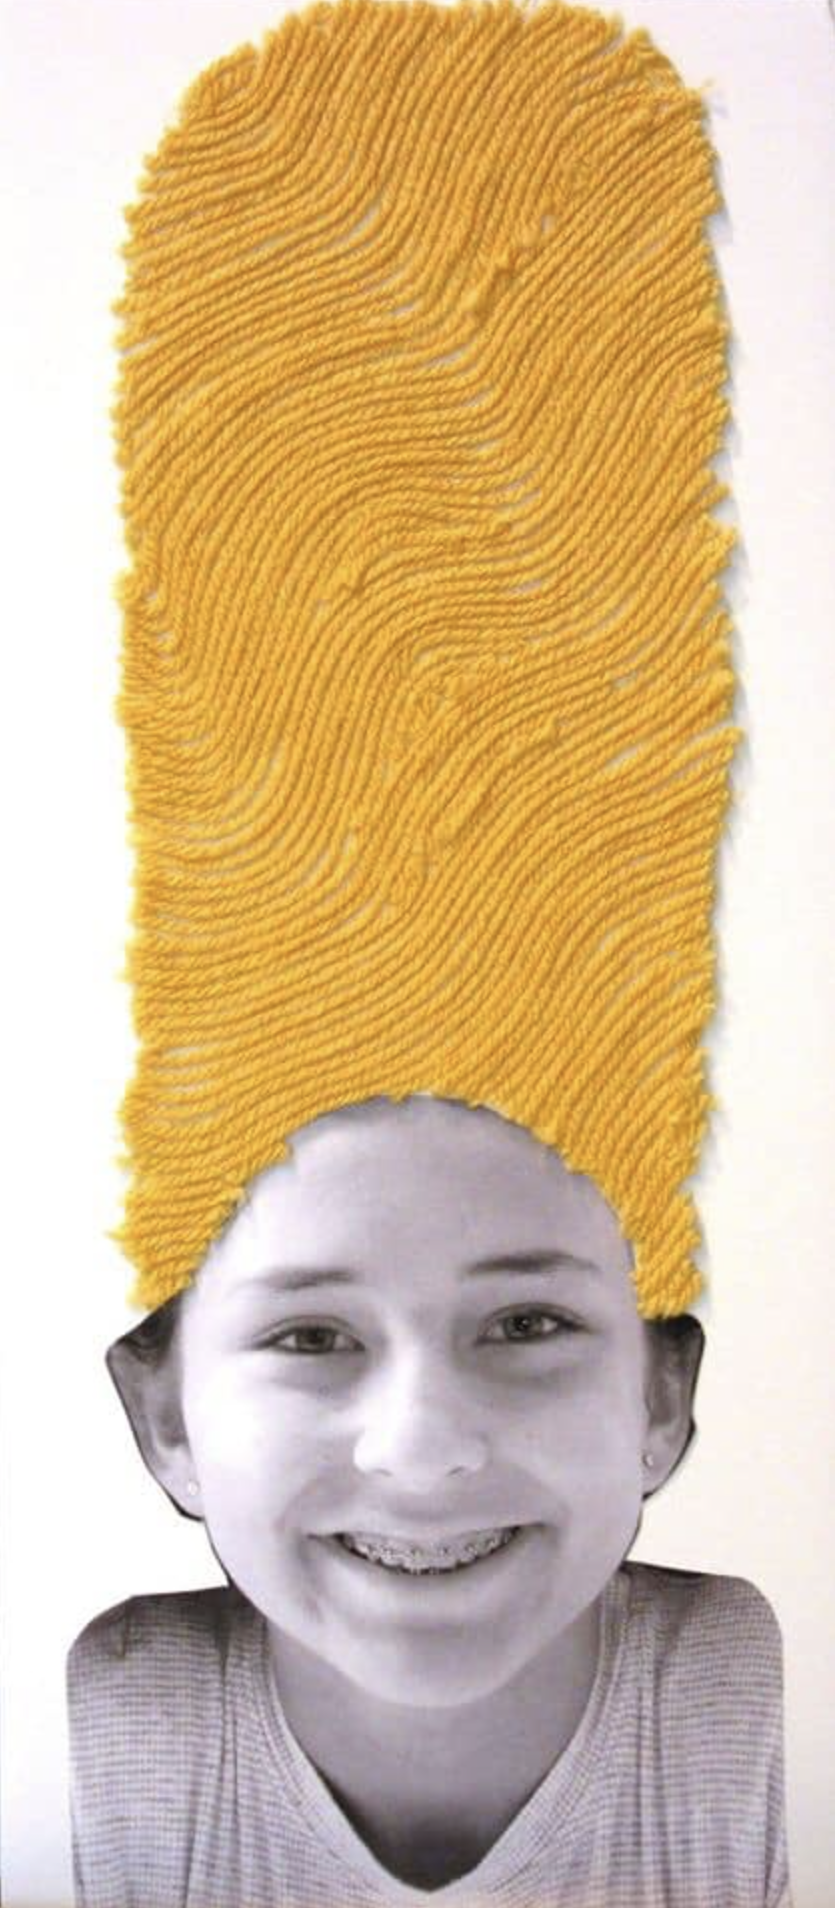 A child with yellow yarn for hair